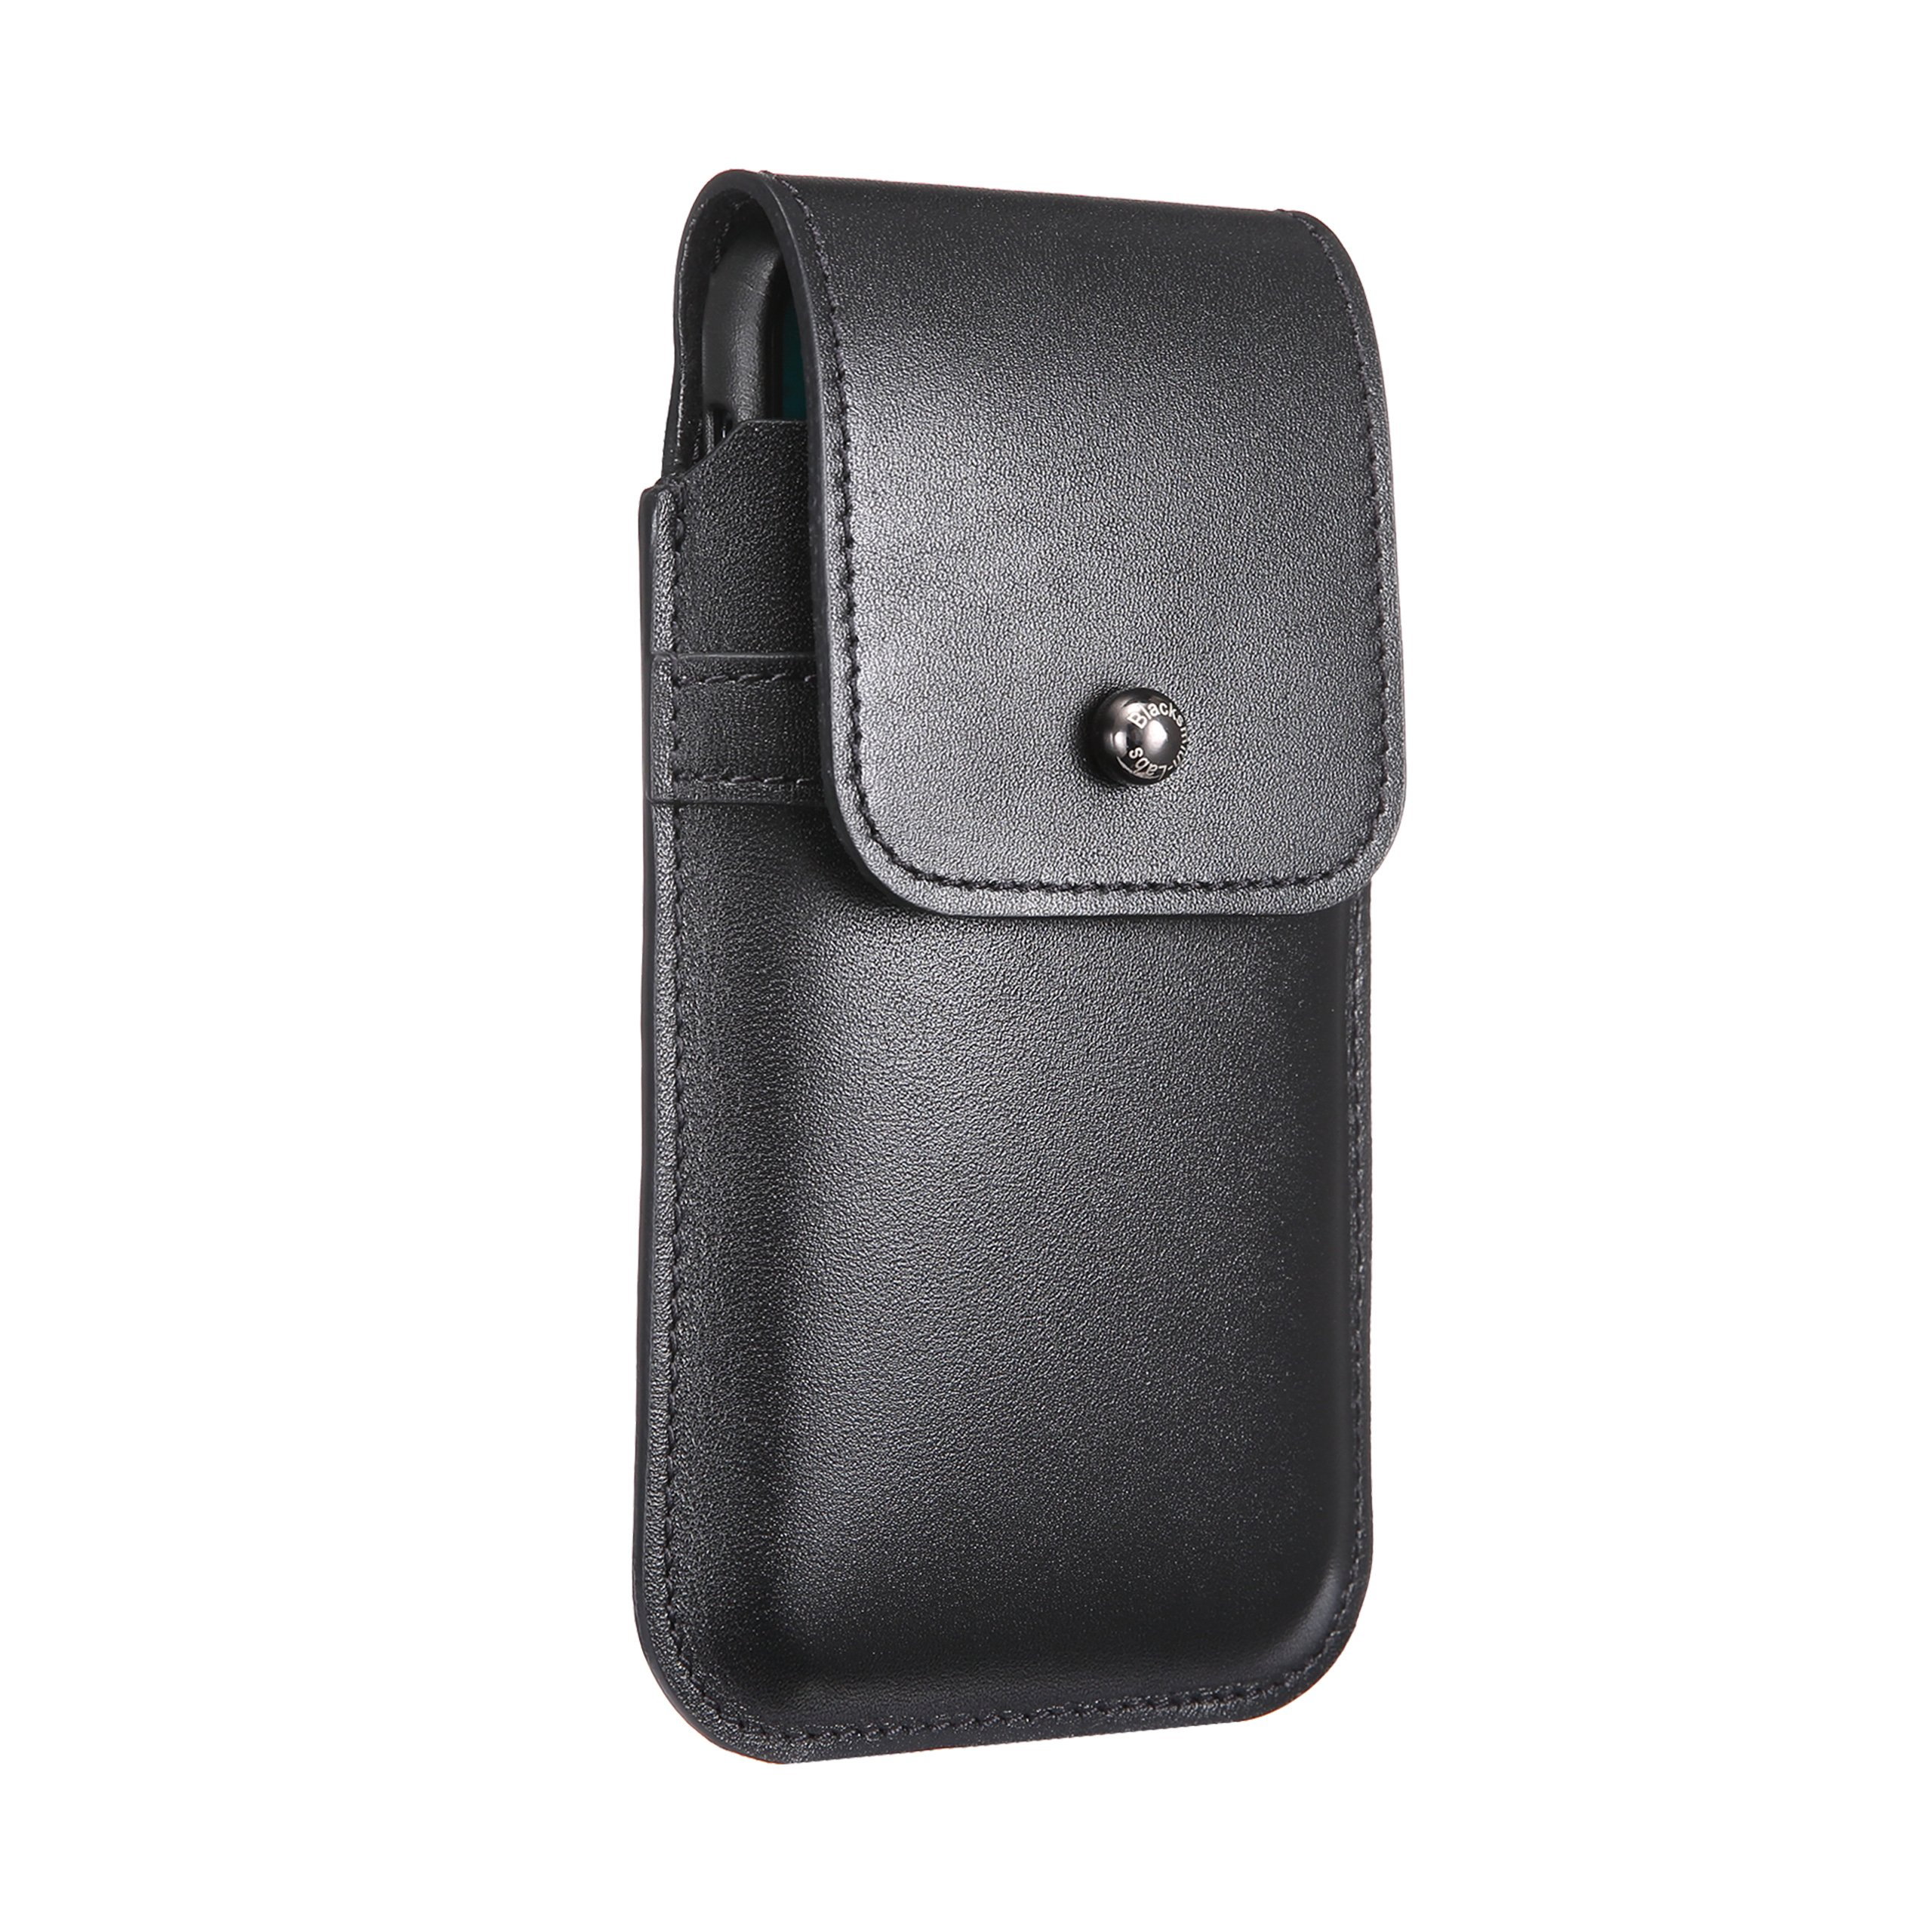 Blacksmith-Labs Barrett Mezzano 2017 Premium Oversized Genuine Leather Swivel Belt Clip Holster for Apple iPhone X/Xs for use with Apple Leather Case - Black Cowhide, Gunmetal Belt Clip